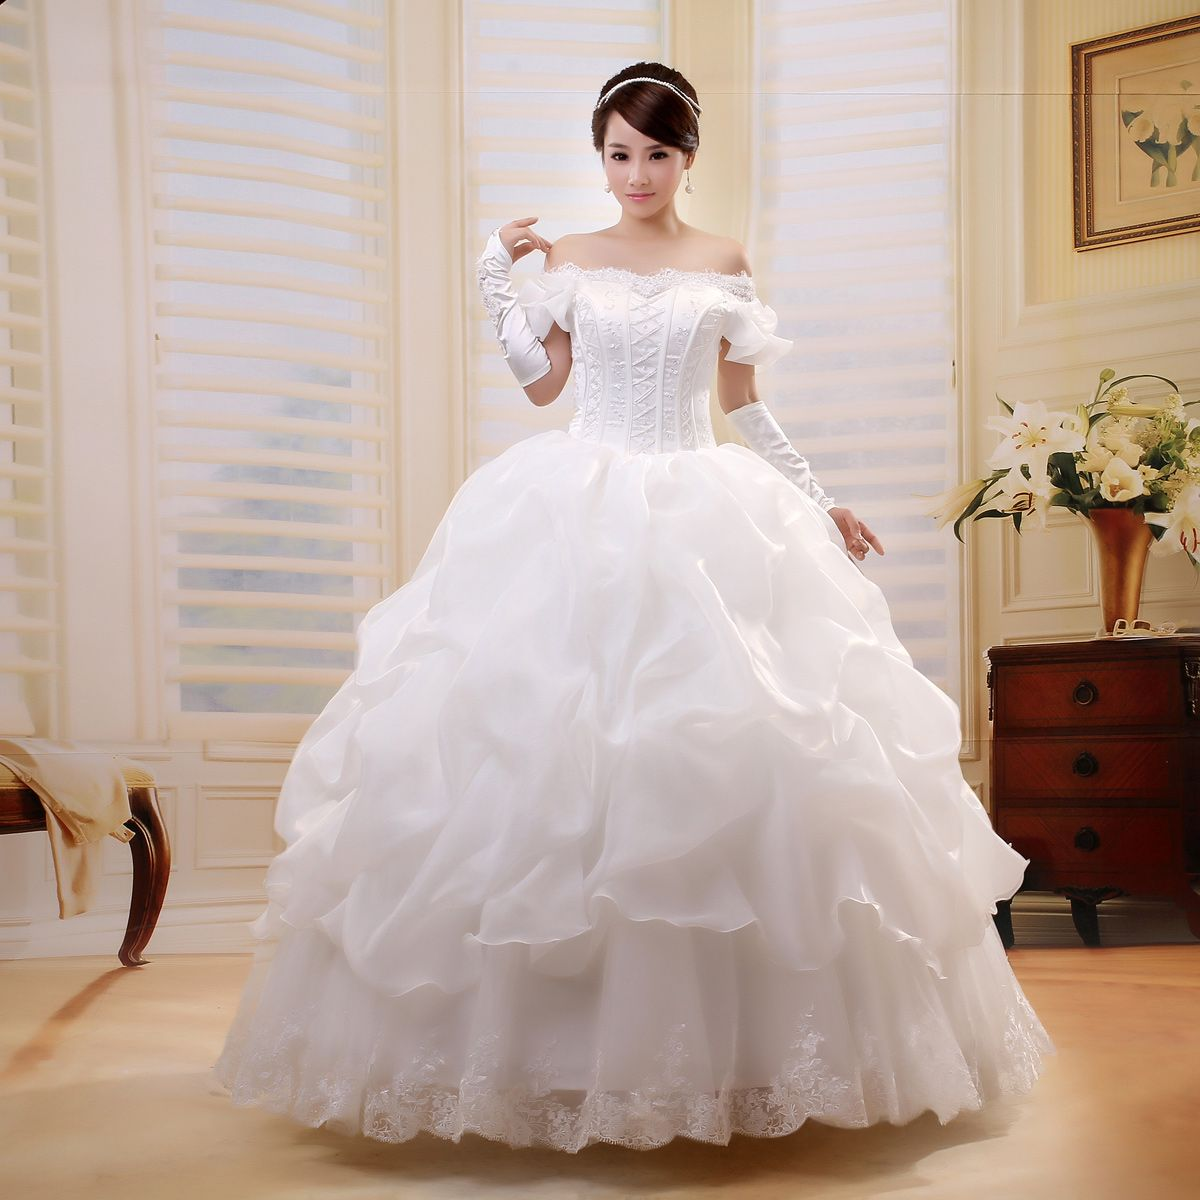 Princess Ball Gowns | ... Up Princess Bride Wedding Dress Floor ...